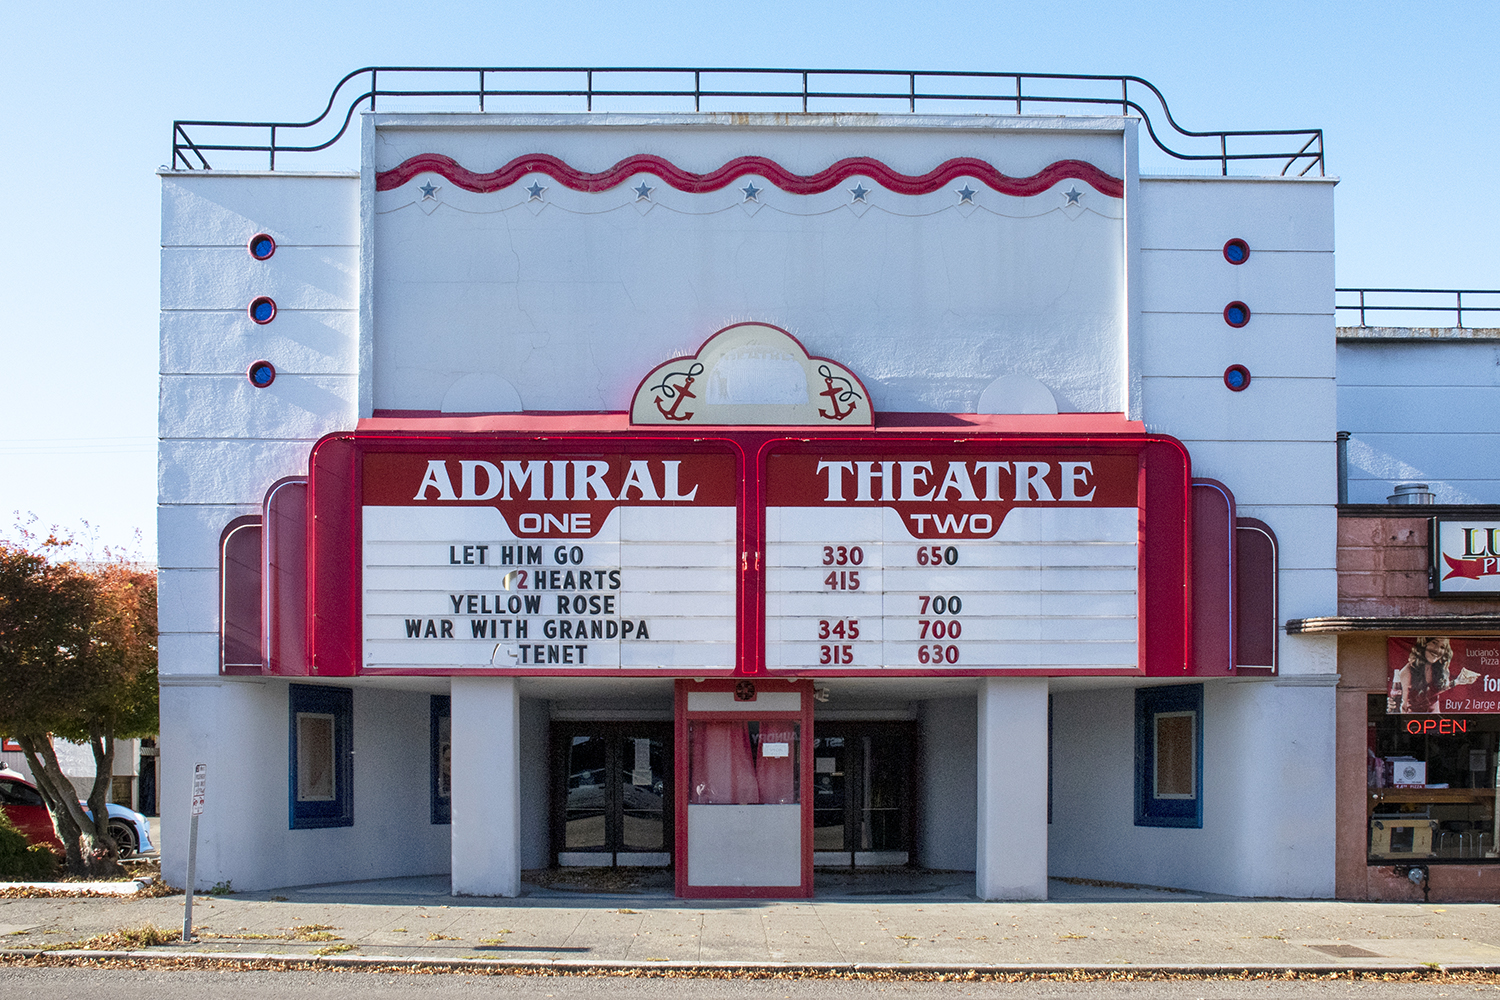 <p>Over in West Seattle, the Historic Admiral Theater offers patrons a newly preserved and renovated interior (now with four screens!) and a nostalgic marquee out front. Built in 1942, the nautical-themed landmark has since transformed from a second-run neighborhood theater to a cozy spot for new releases. (Image: Rachael Jones / Seattle Refined)</p>